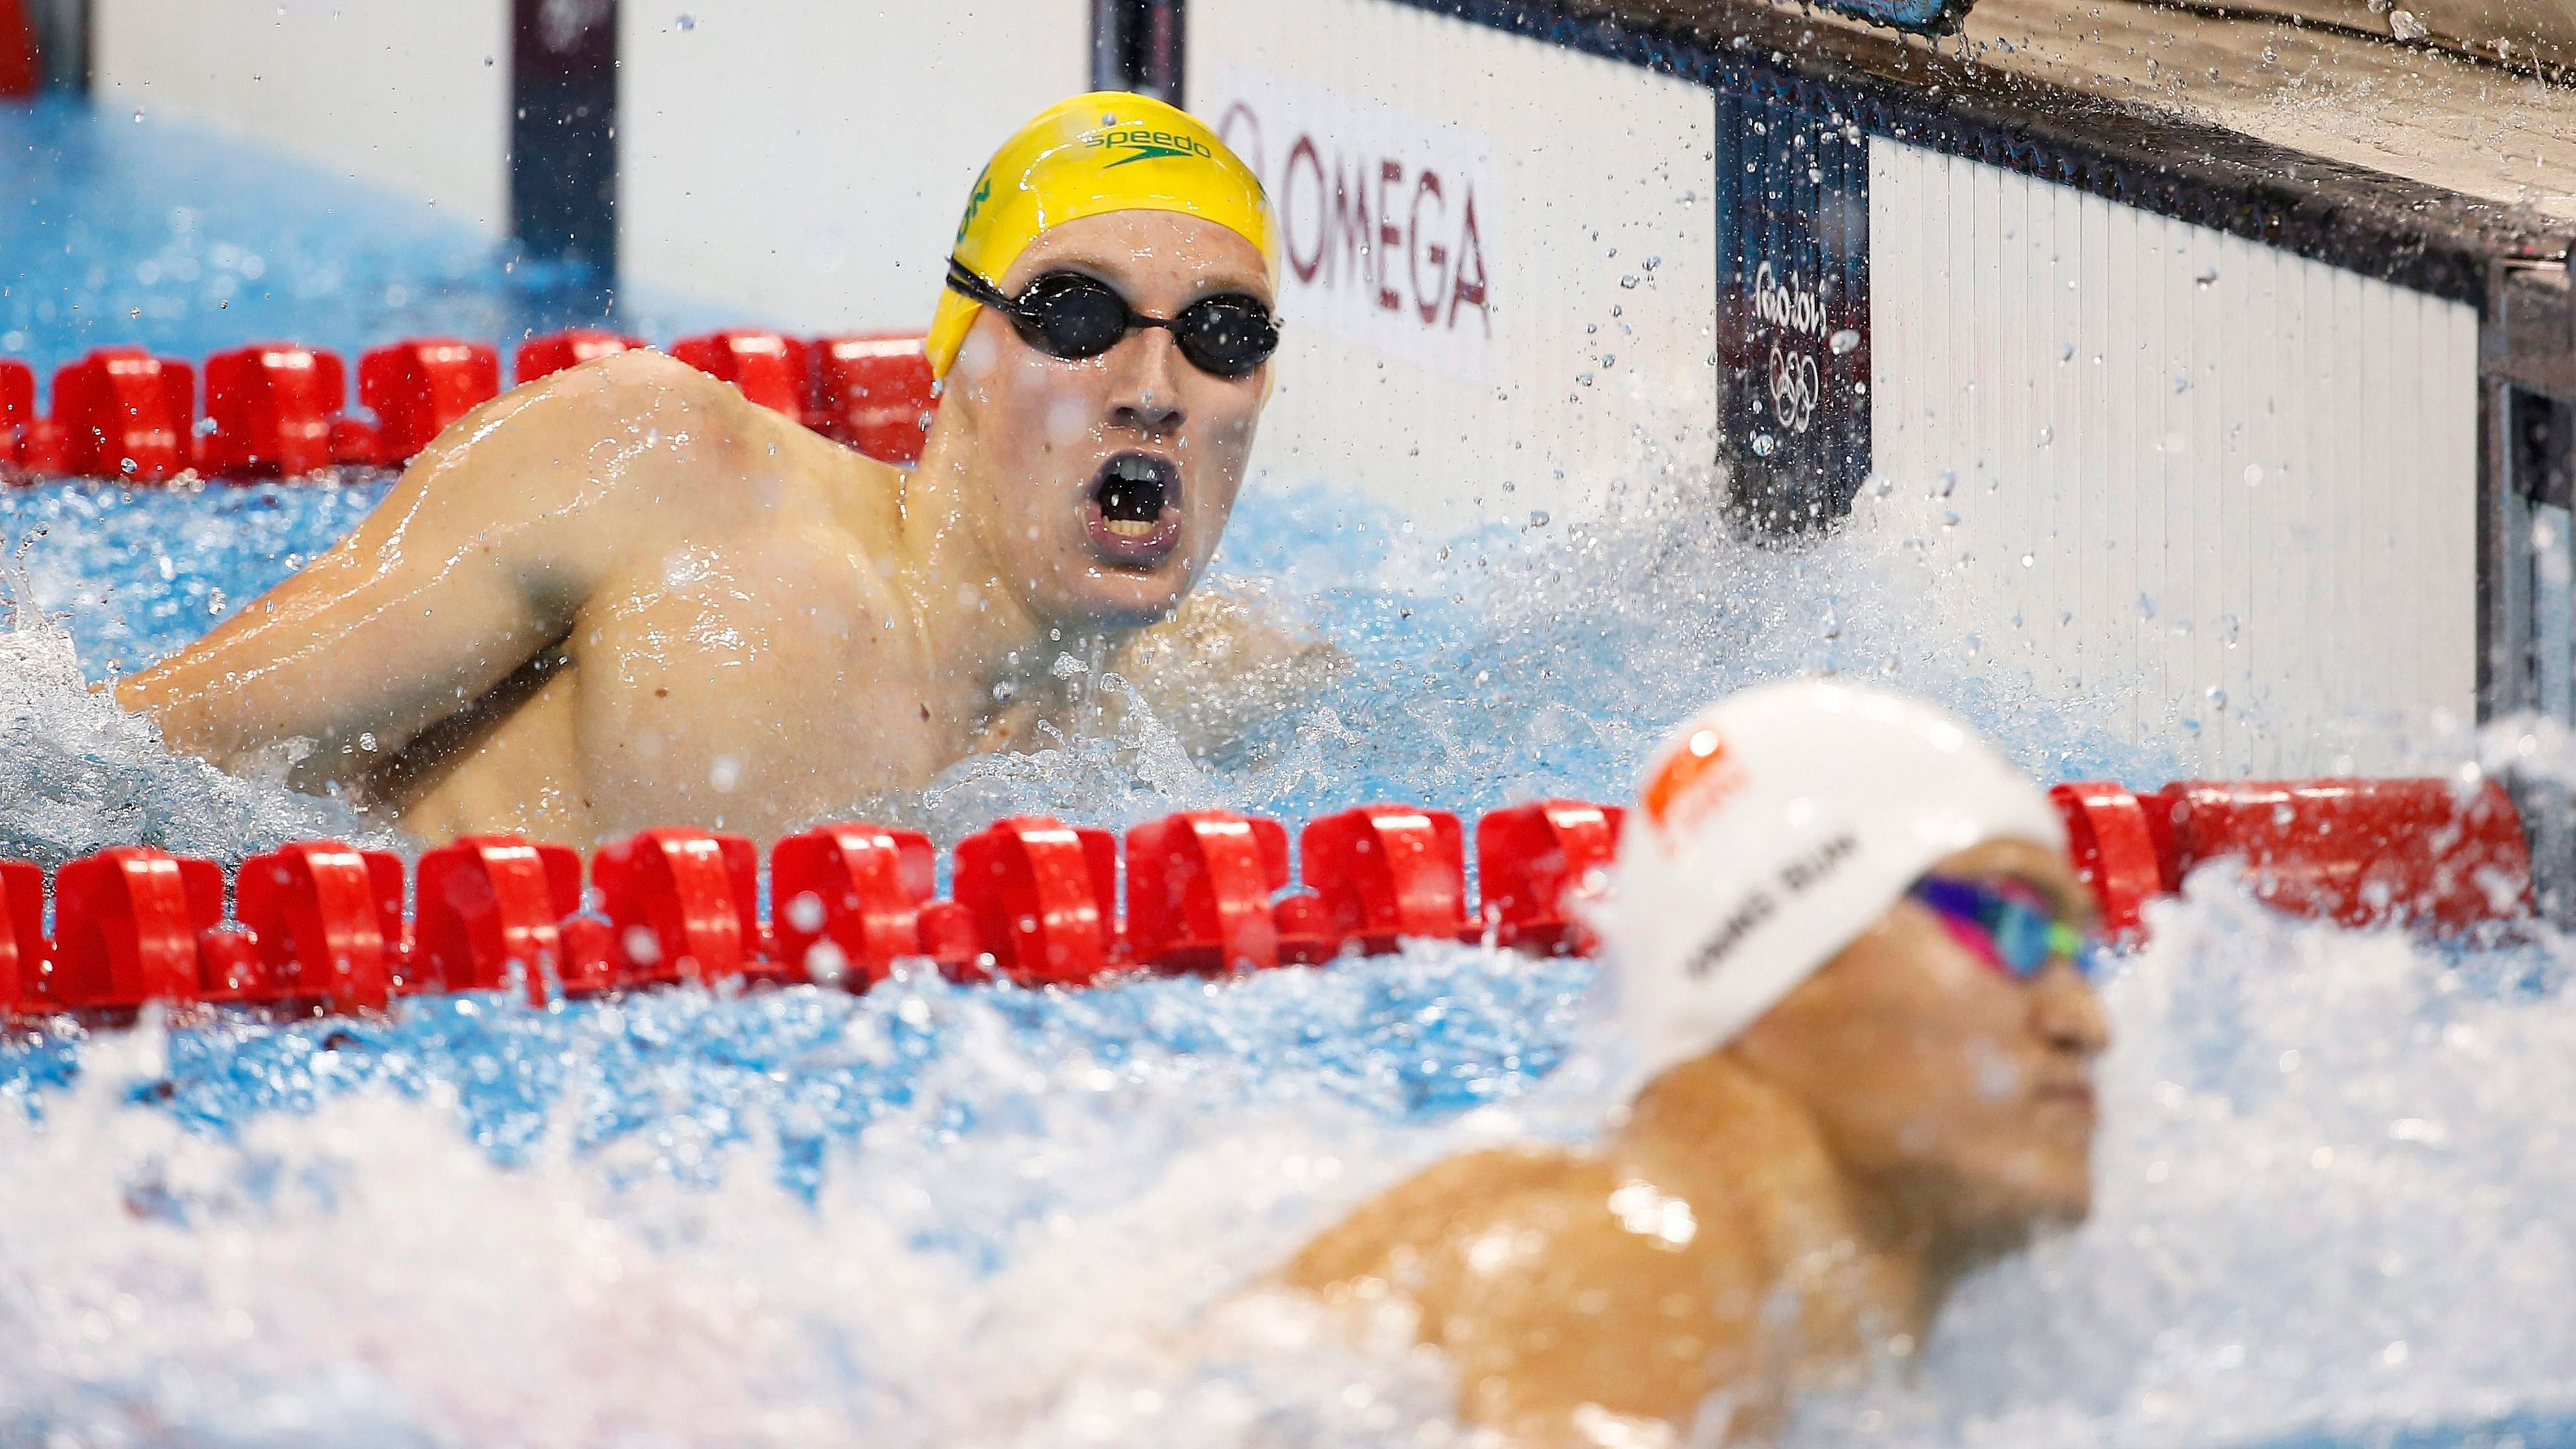 Mack Horton separated from Sun Yang in Korea as tensions rise